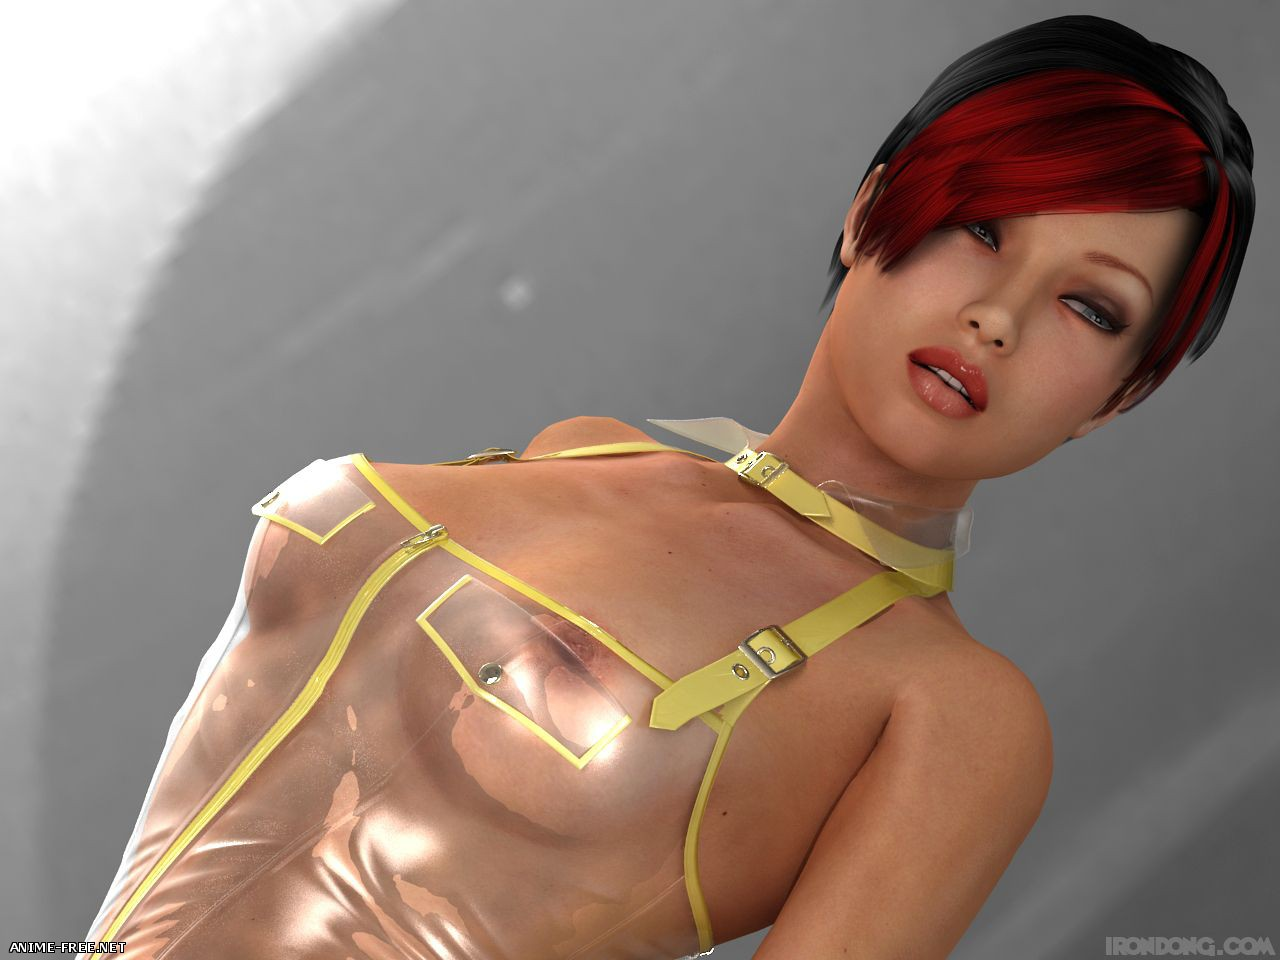 Siterip irondong [Uncen] [3DCG] [JPG] Hentai ART